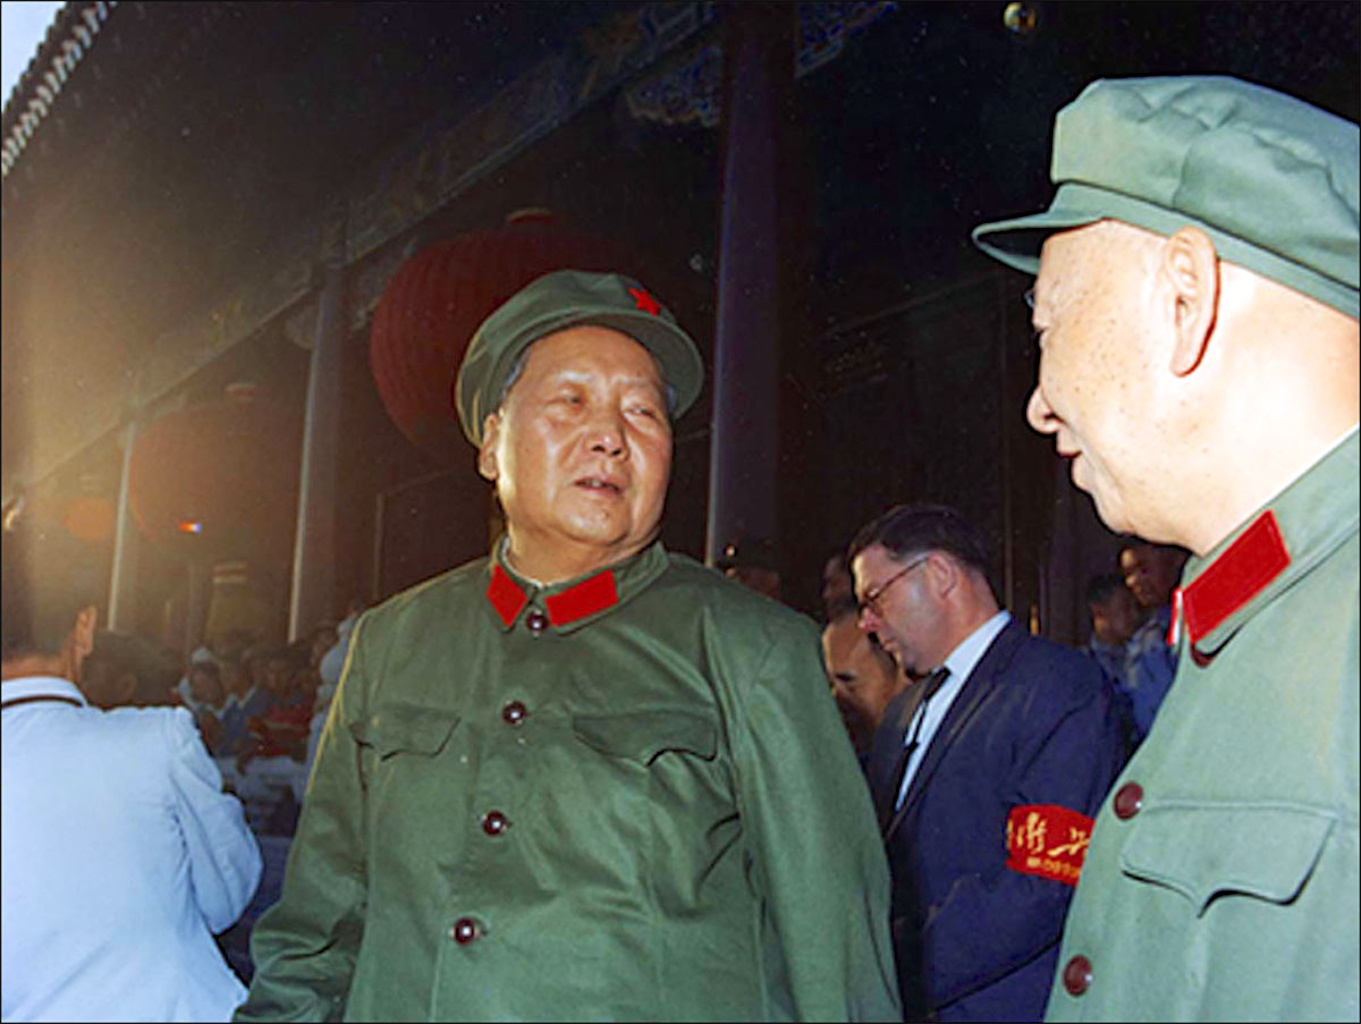 meng-zhaorui-1966-mao-and-others-7-photography-of-china.jpg